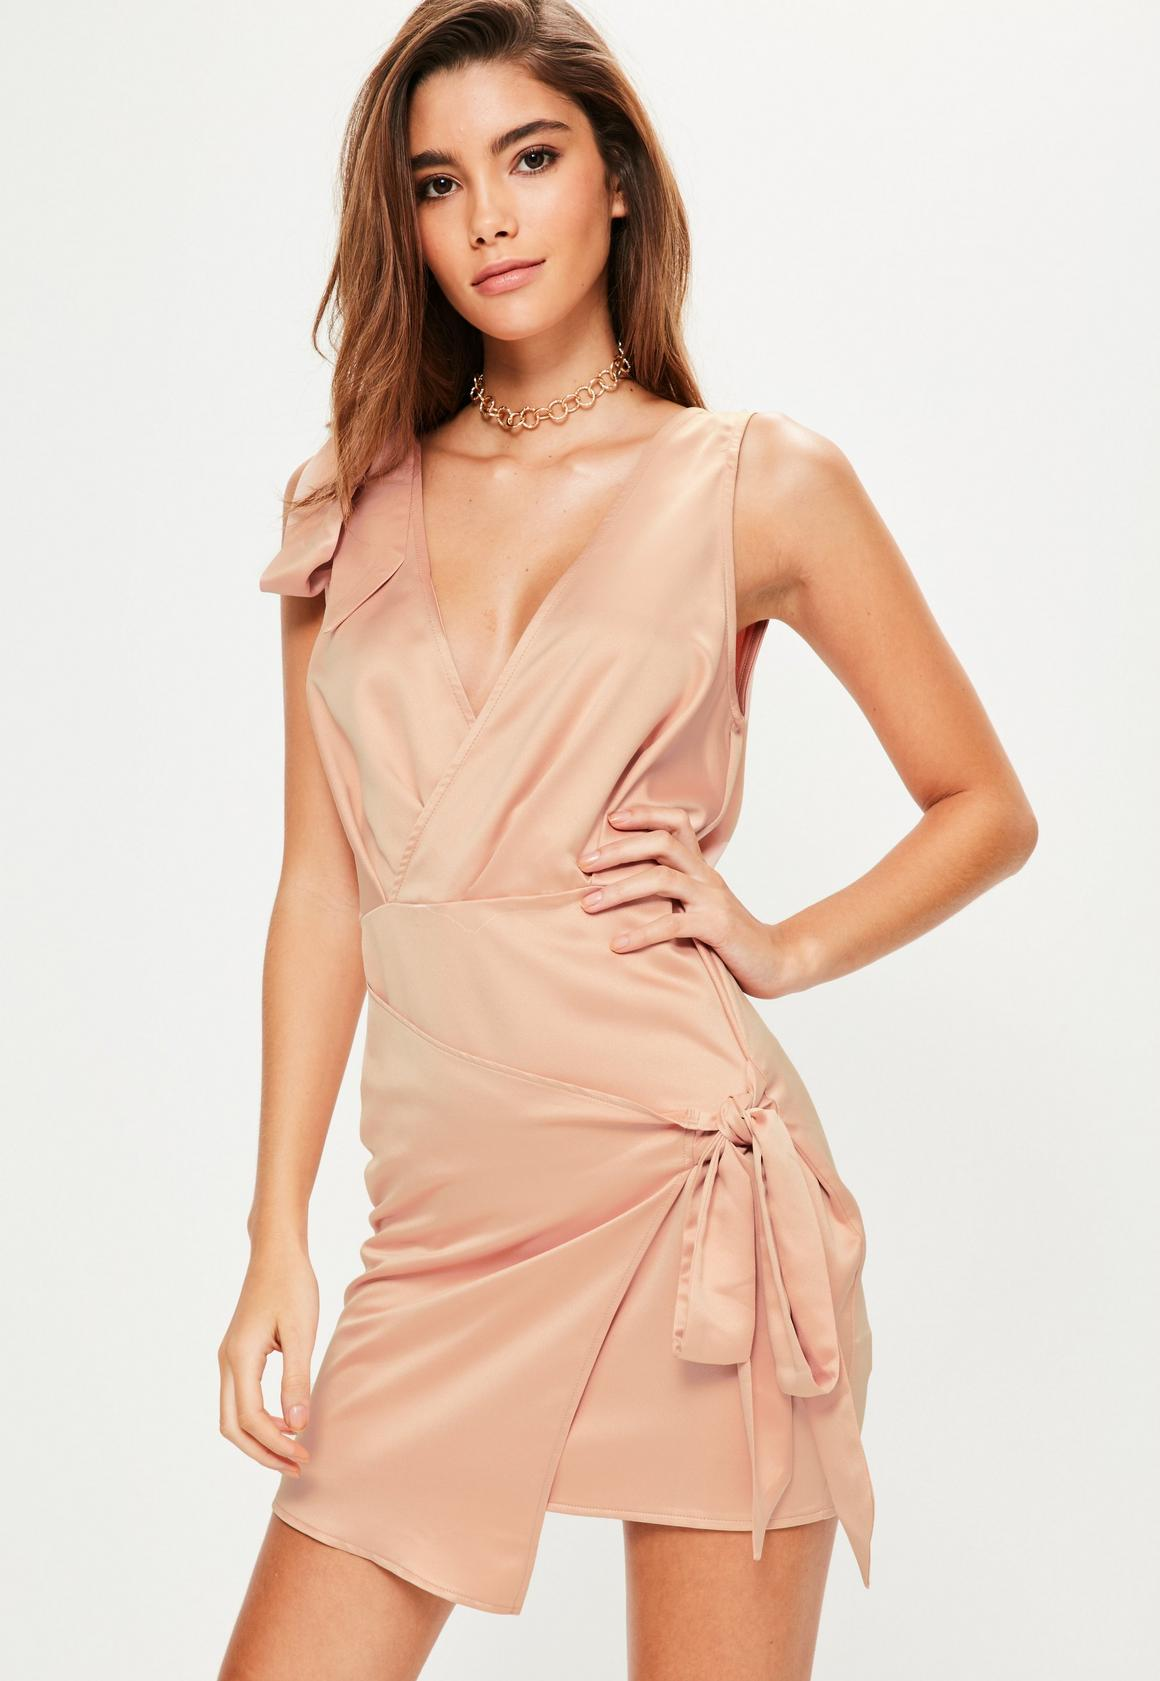 Backless Dresses - Open & Low Back Dresses | Missguided